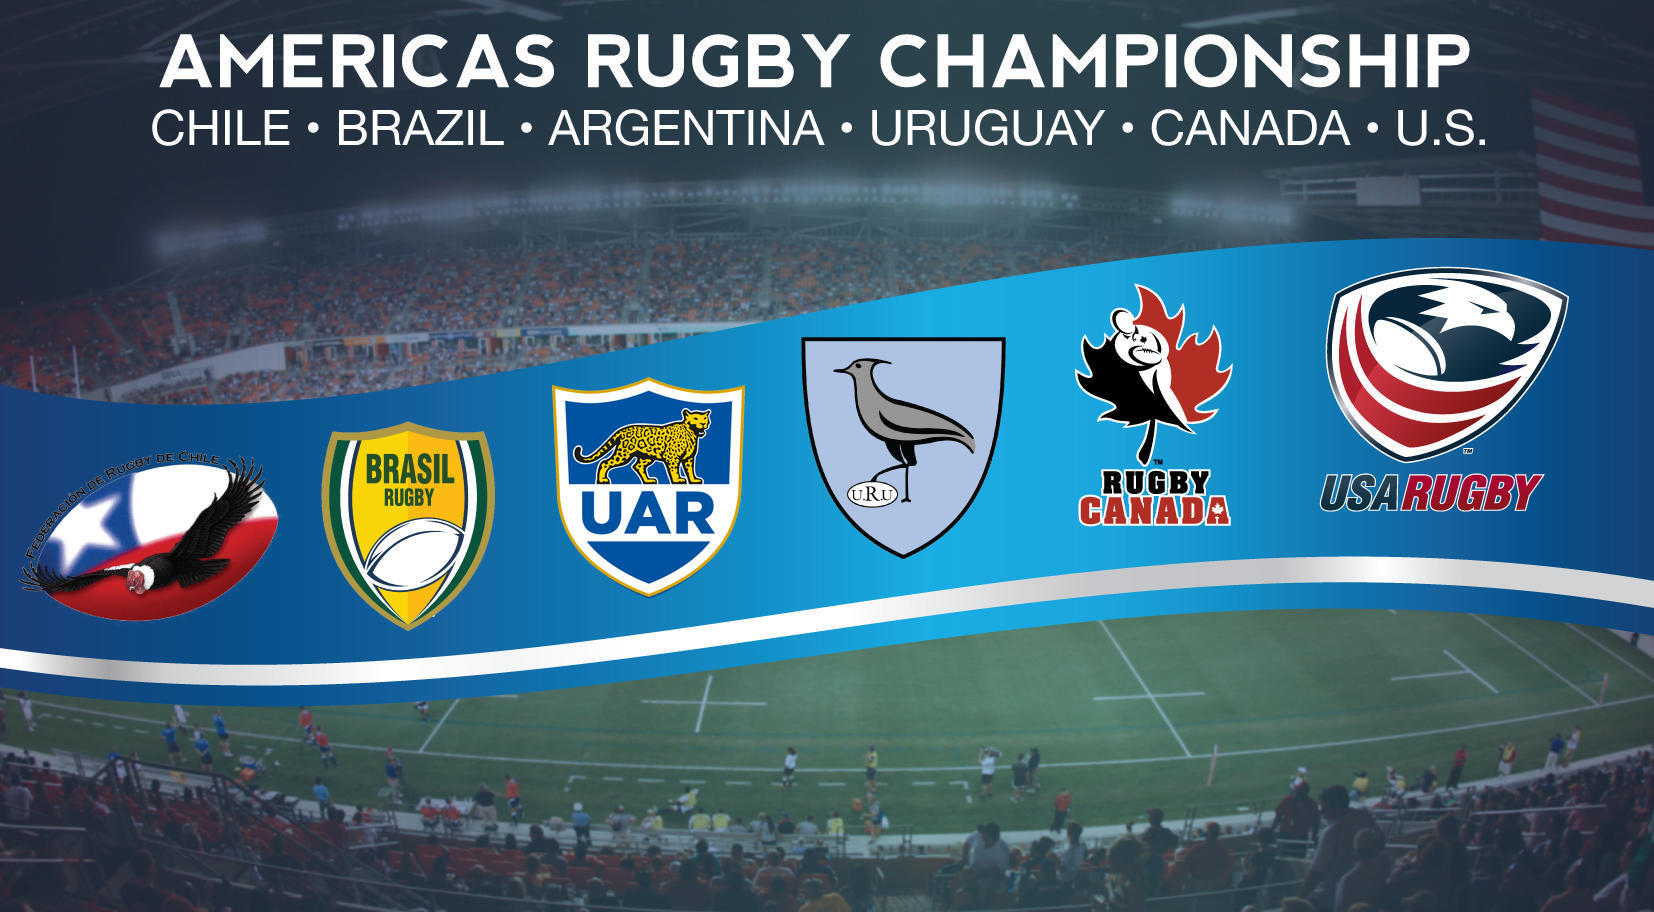 Inaugural Americas Rugby Championship schedule released, U.S. venues announced